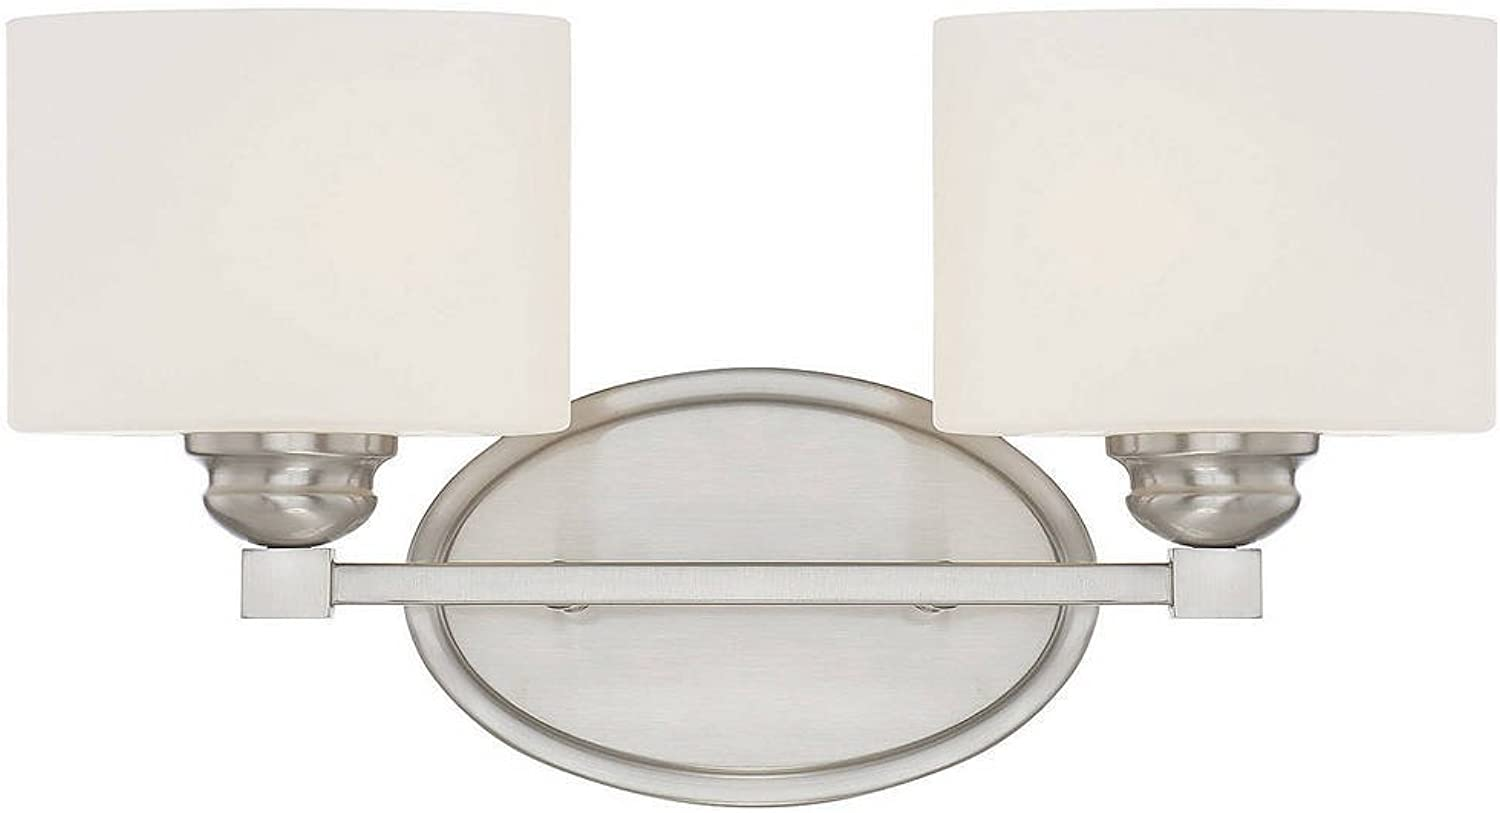 Savoy House 8-890-2-SN 10  Kane 2 Light Bath Bar Transitional Wall Lighting Bathroom Fixture, 100 Watts, Satin Nickel Finish with Metal, Glass Materials